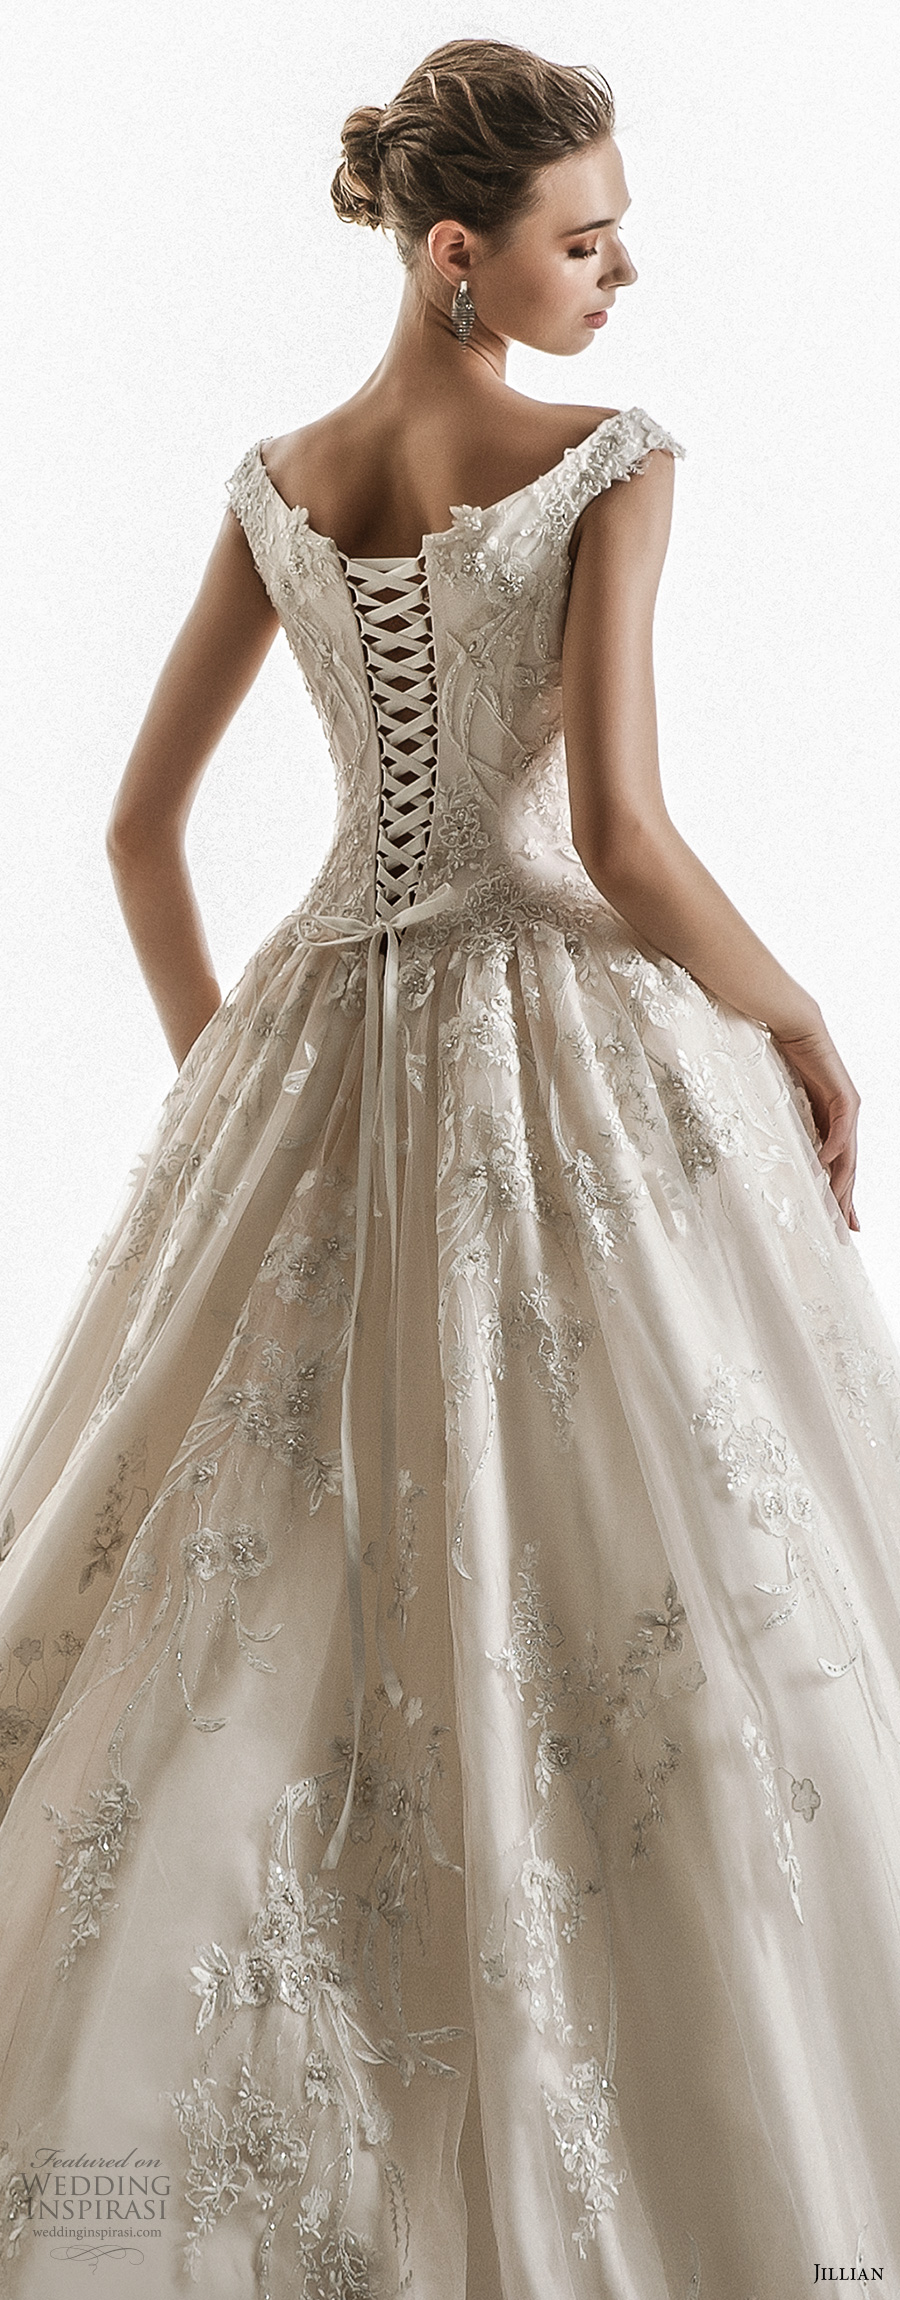 jillian 2018 bridal off the shoulder cap sleeves sweetheart neckline heavily embellished bodice princess ball gown wedding dress corset back chapel train (10) zbv